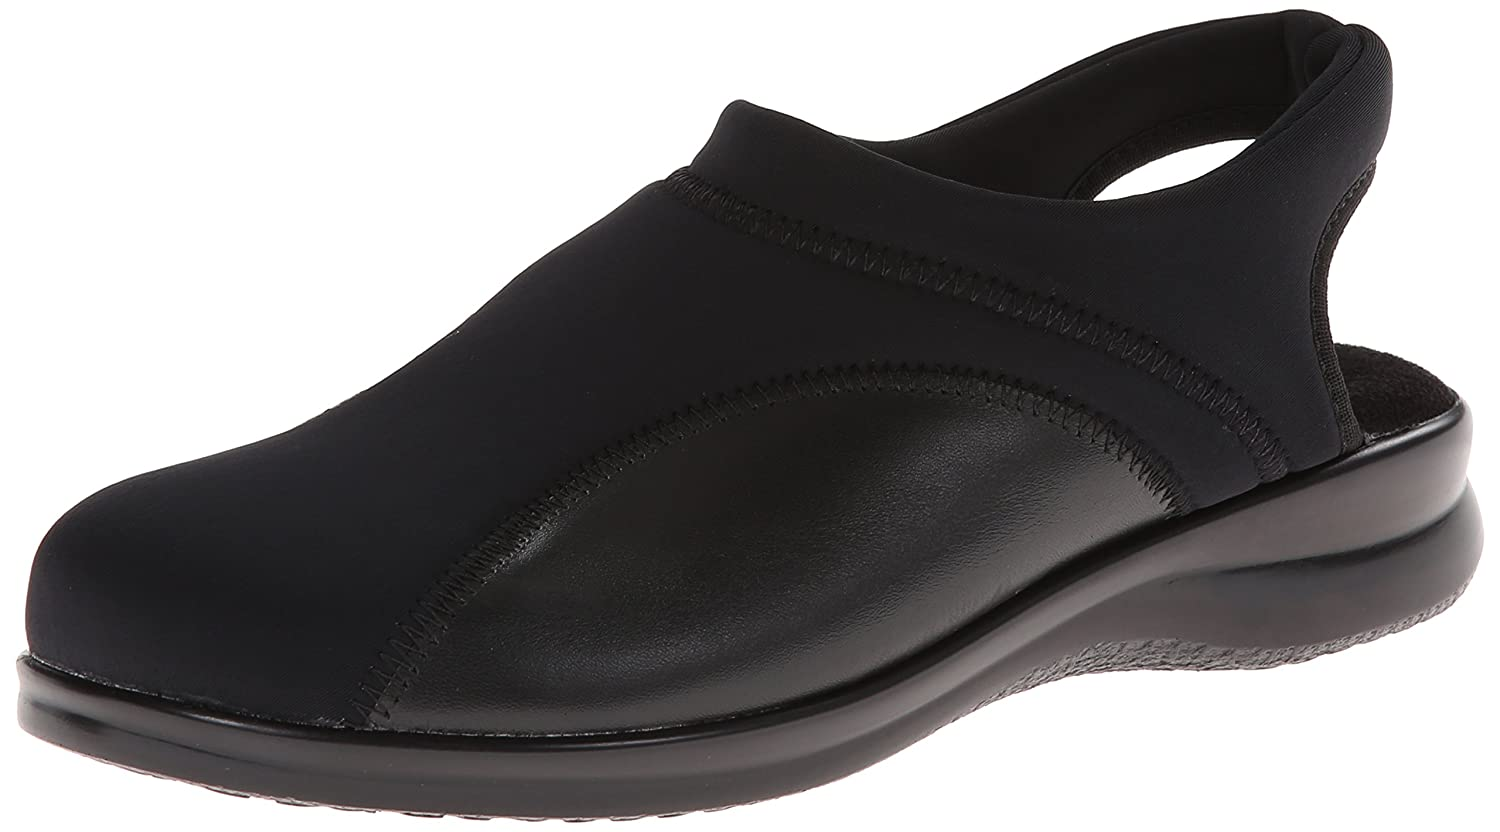 Flexus by Spring Step Women's Flexia Flat US|Black B00CP602MS 38 EU/7.5-8 M US|Black Flat fe99ee